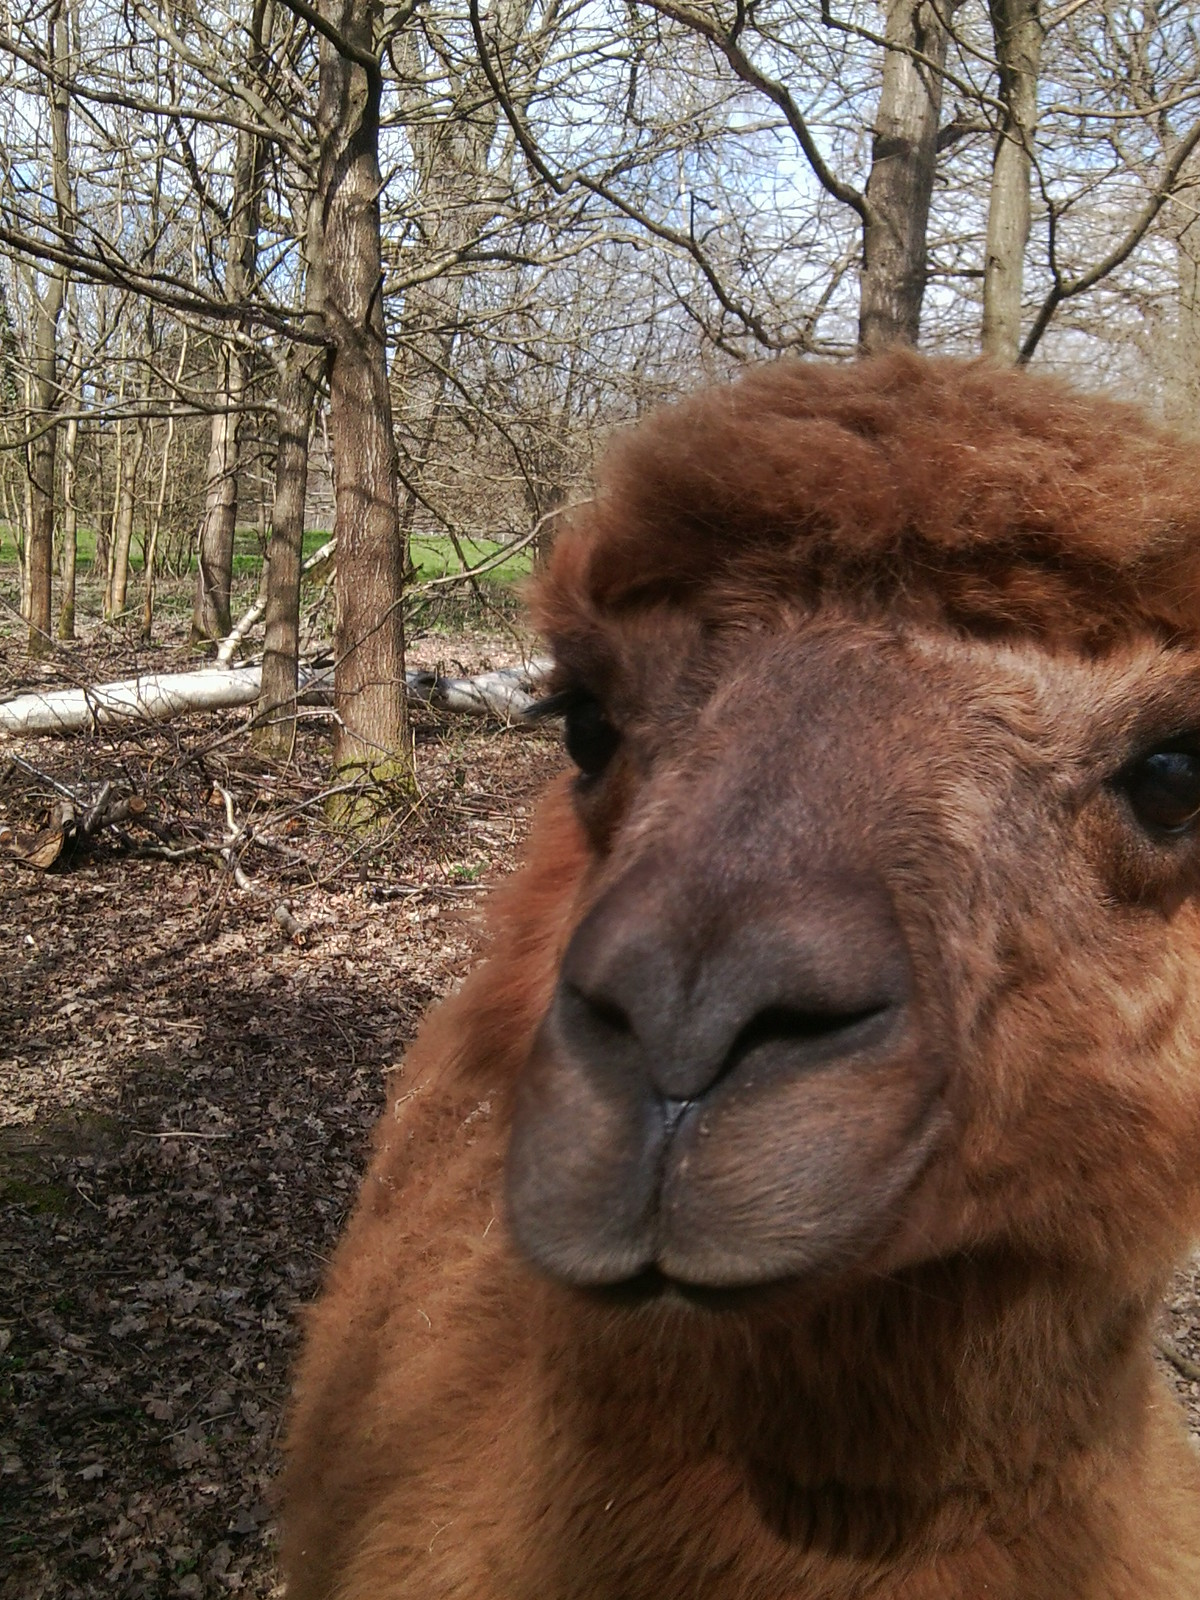 Does my nose look big in this? World's nosiest alpaca, Hever to Leigh